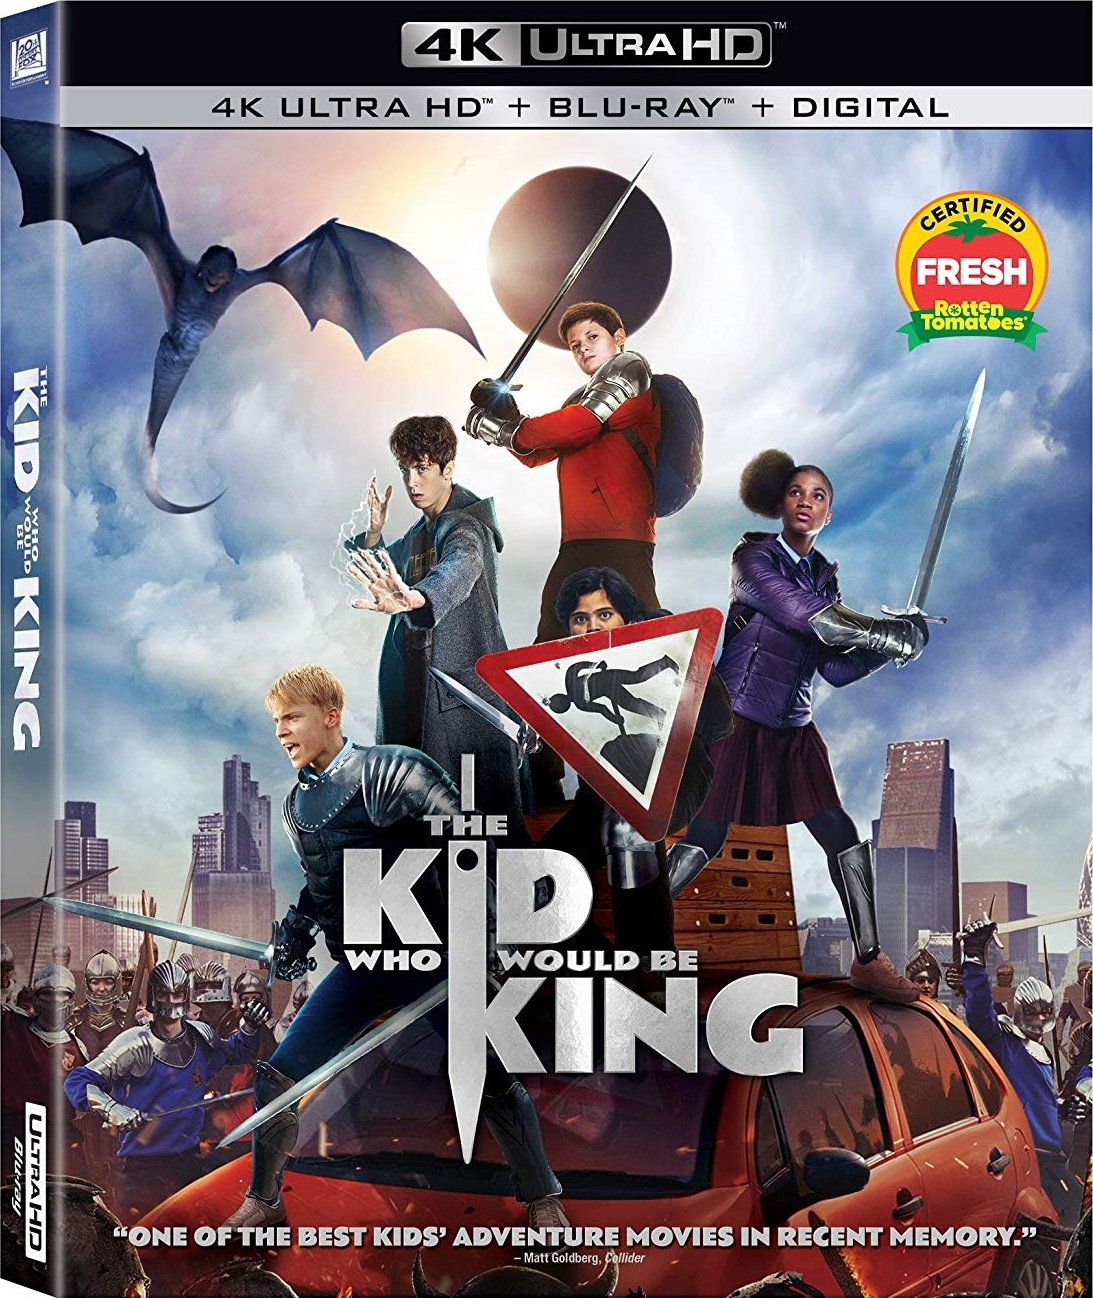 The Kid Who Would Be King (4K Ultra HD Blu-ray)(Pre-order / TBA)